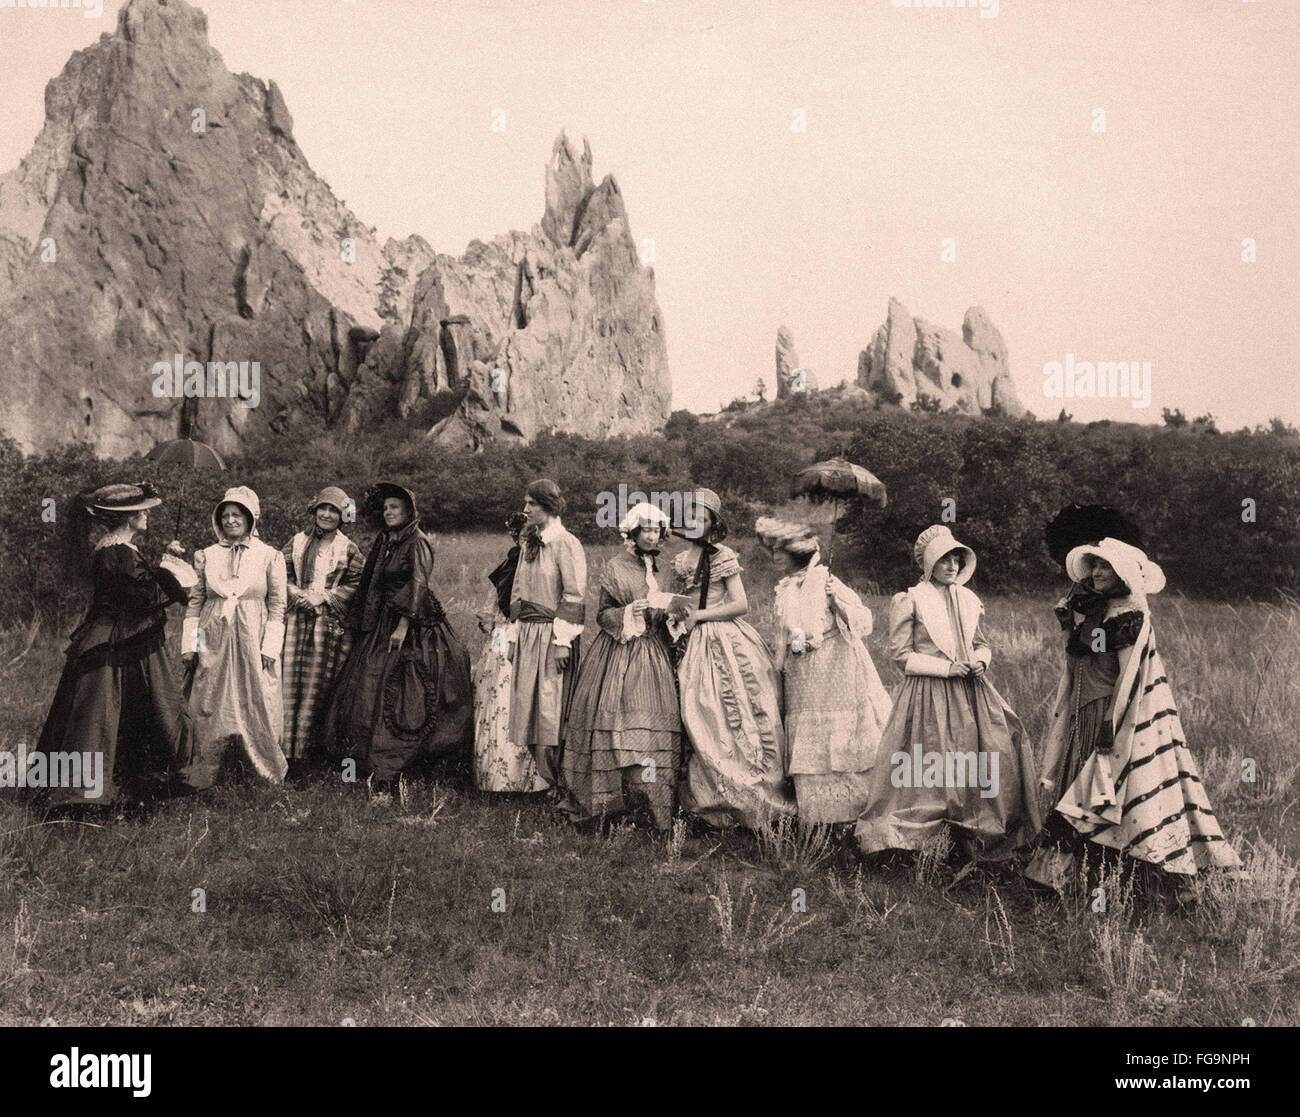 Women rehearsing for the Equal Rights - Colorado Springs -  1848 - Stock Image